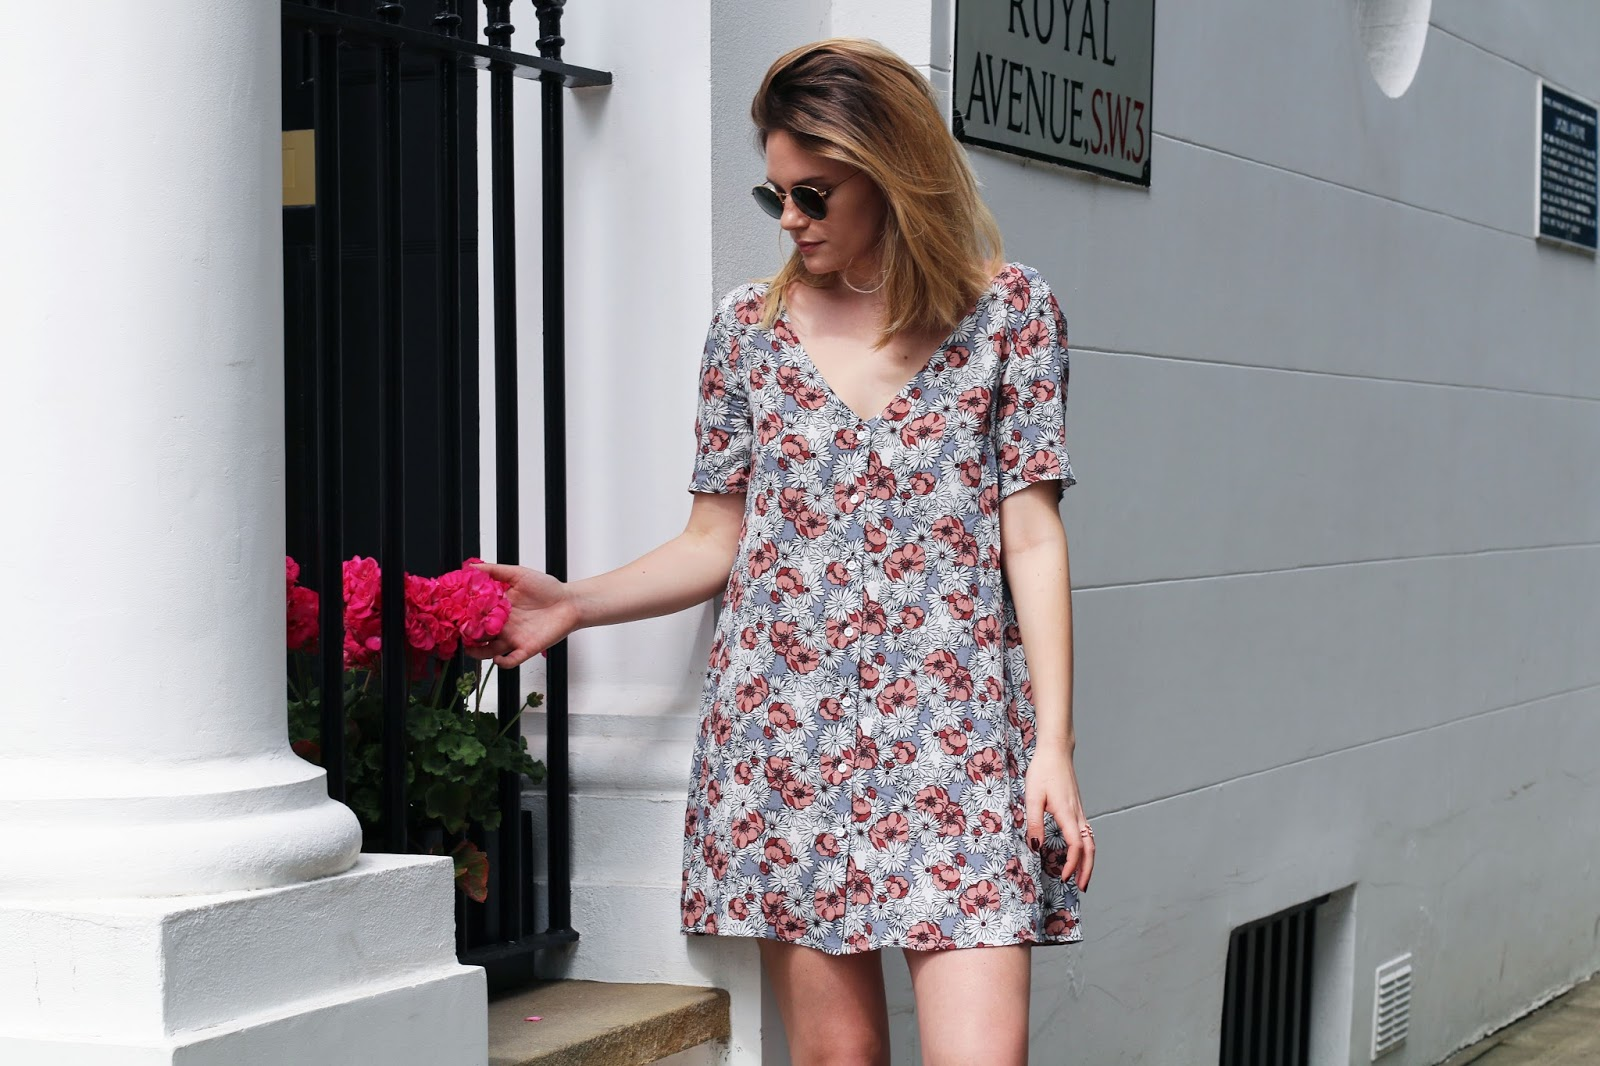 The Last of the Summer Dresses